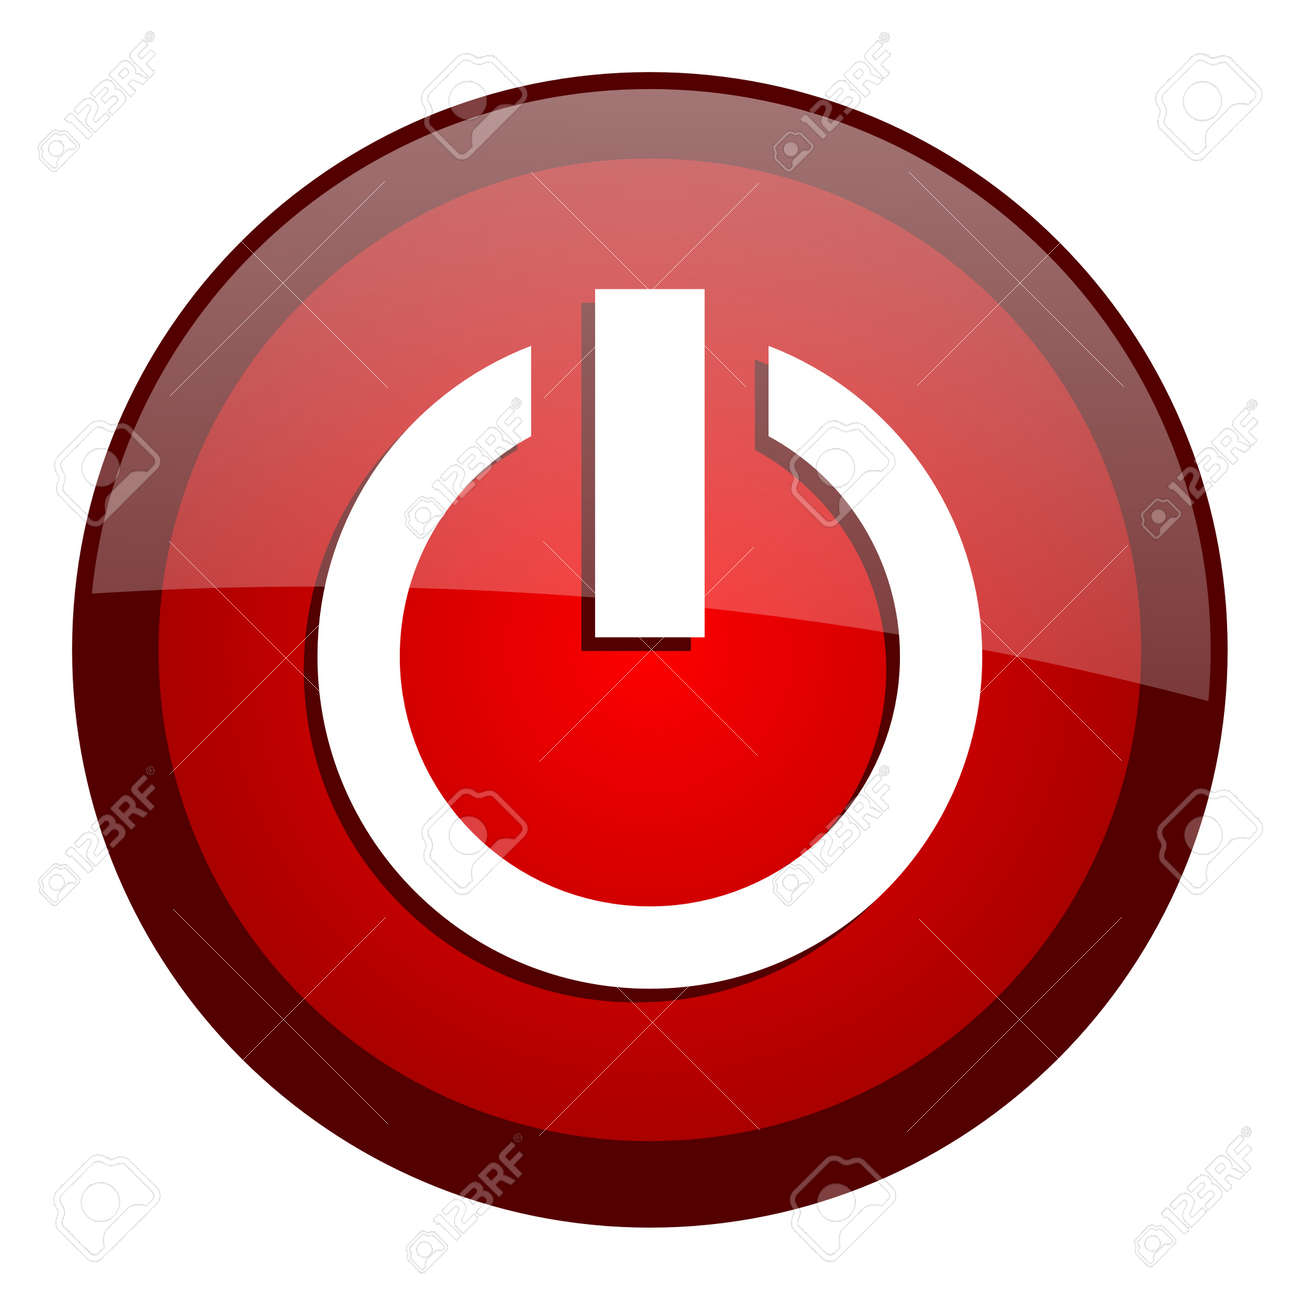 power icon Stock Photo - 20644835